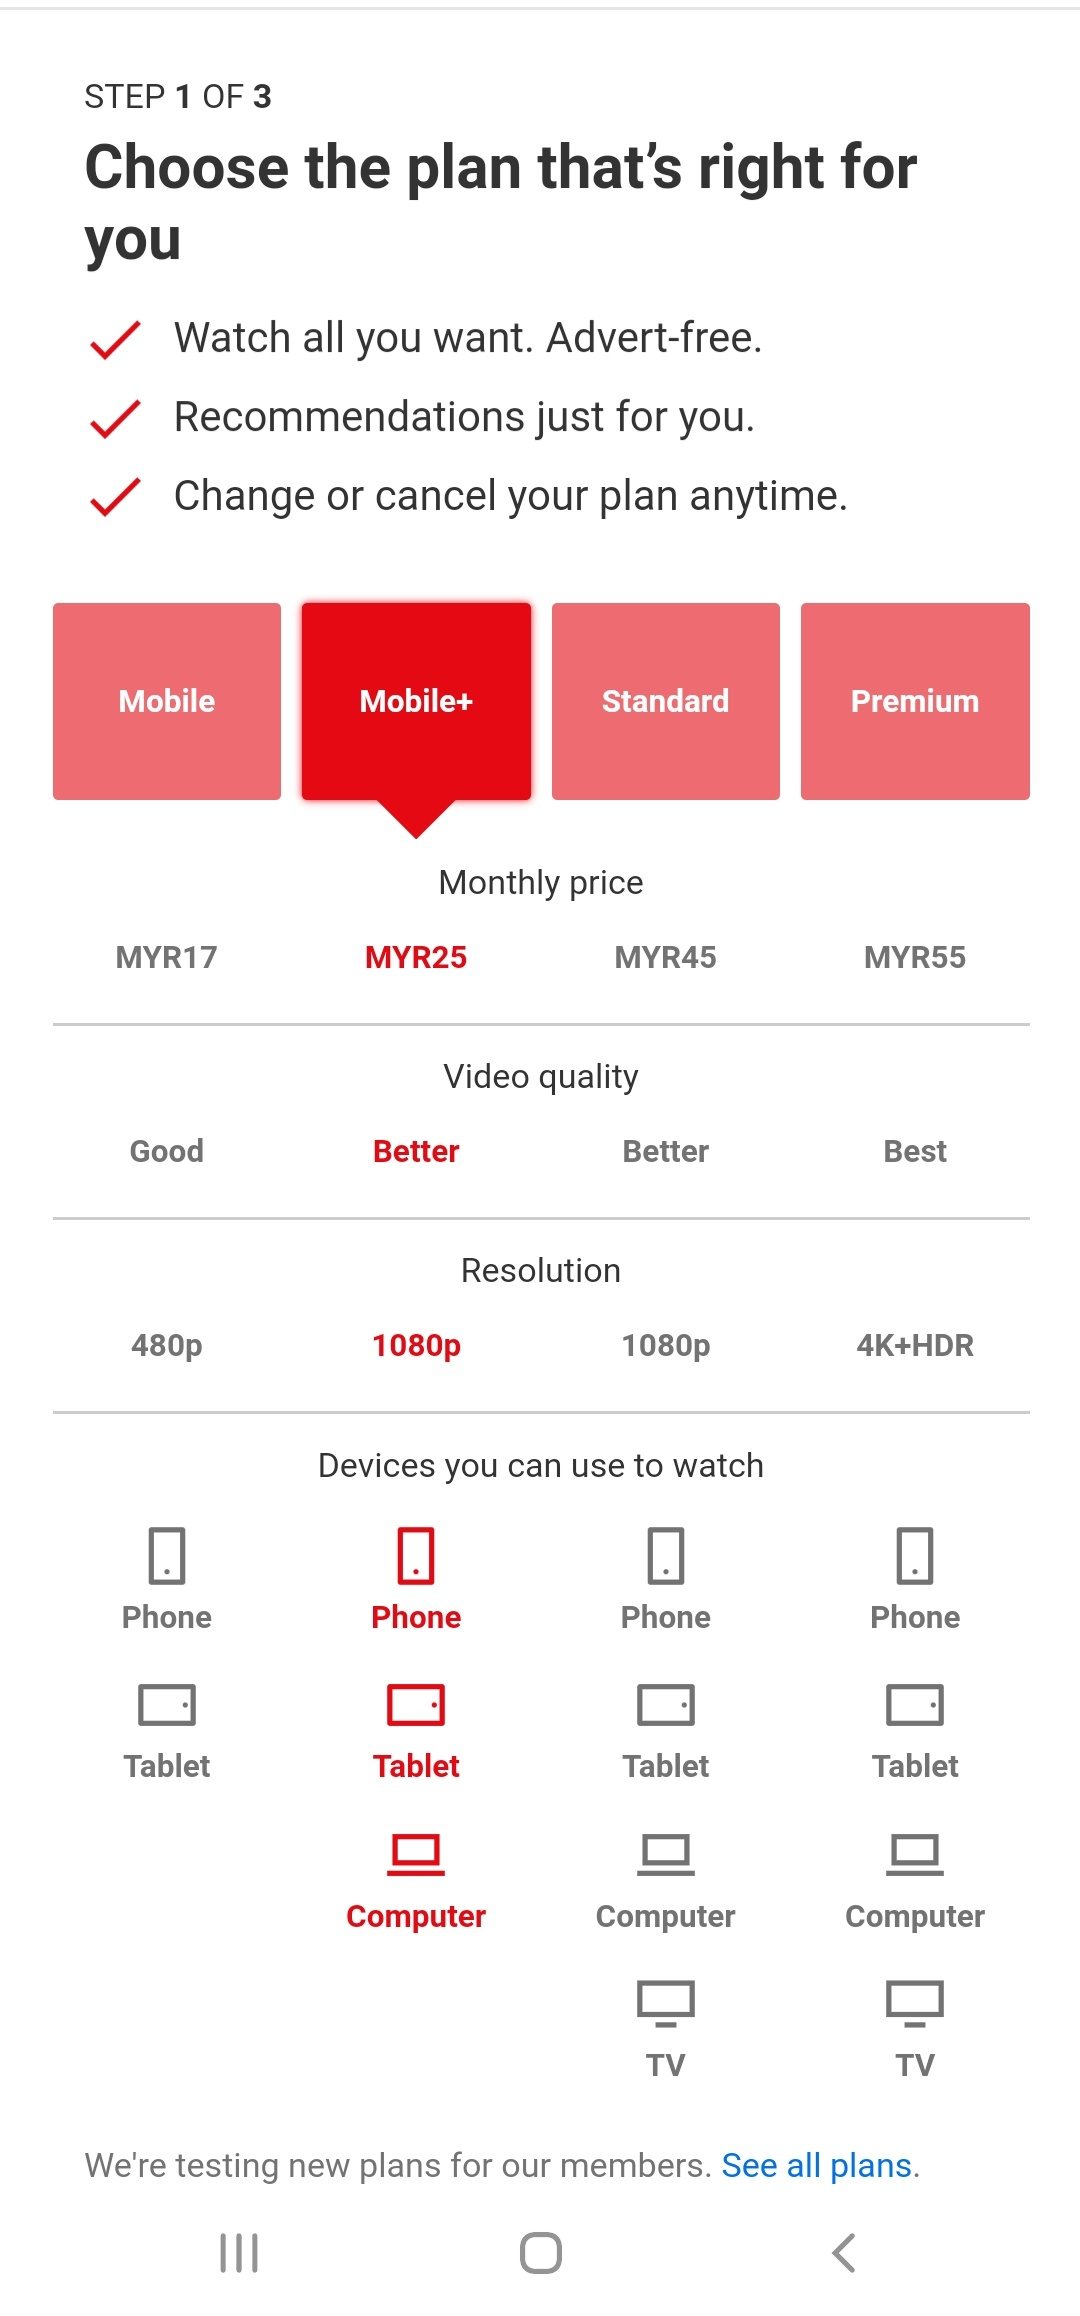 Netflix Mobile+ Plan in Malaysia from Mobile browser